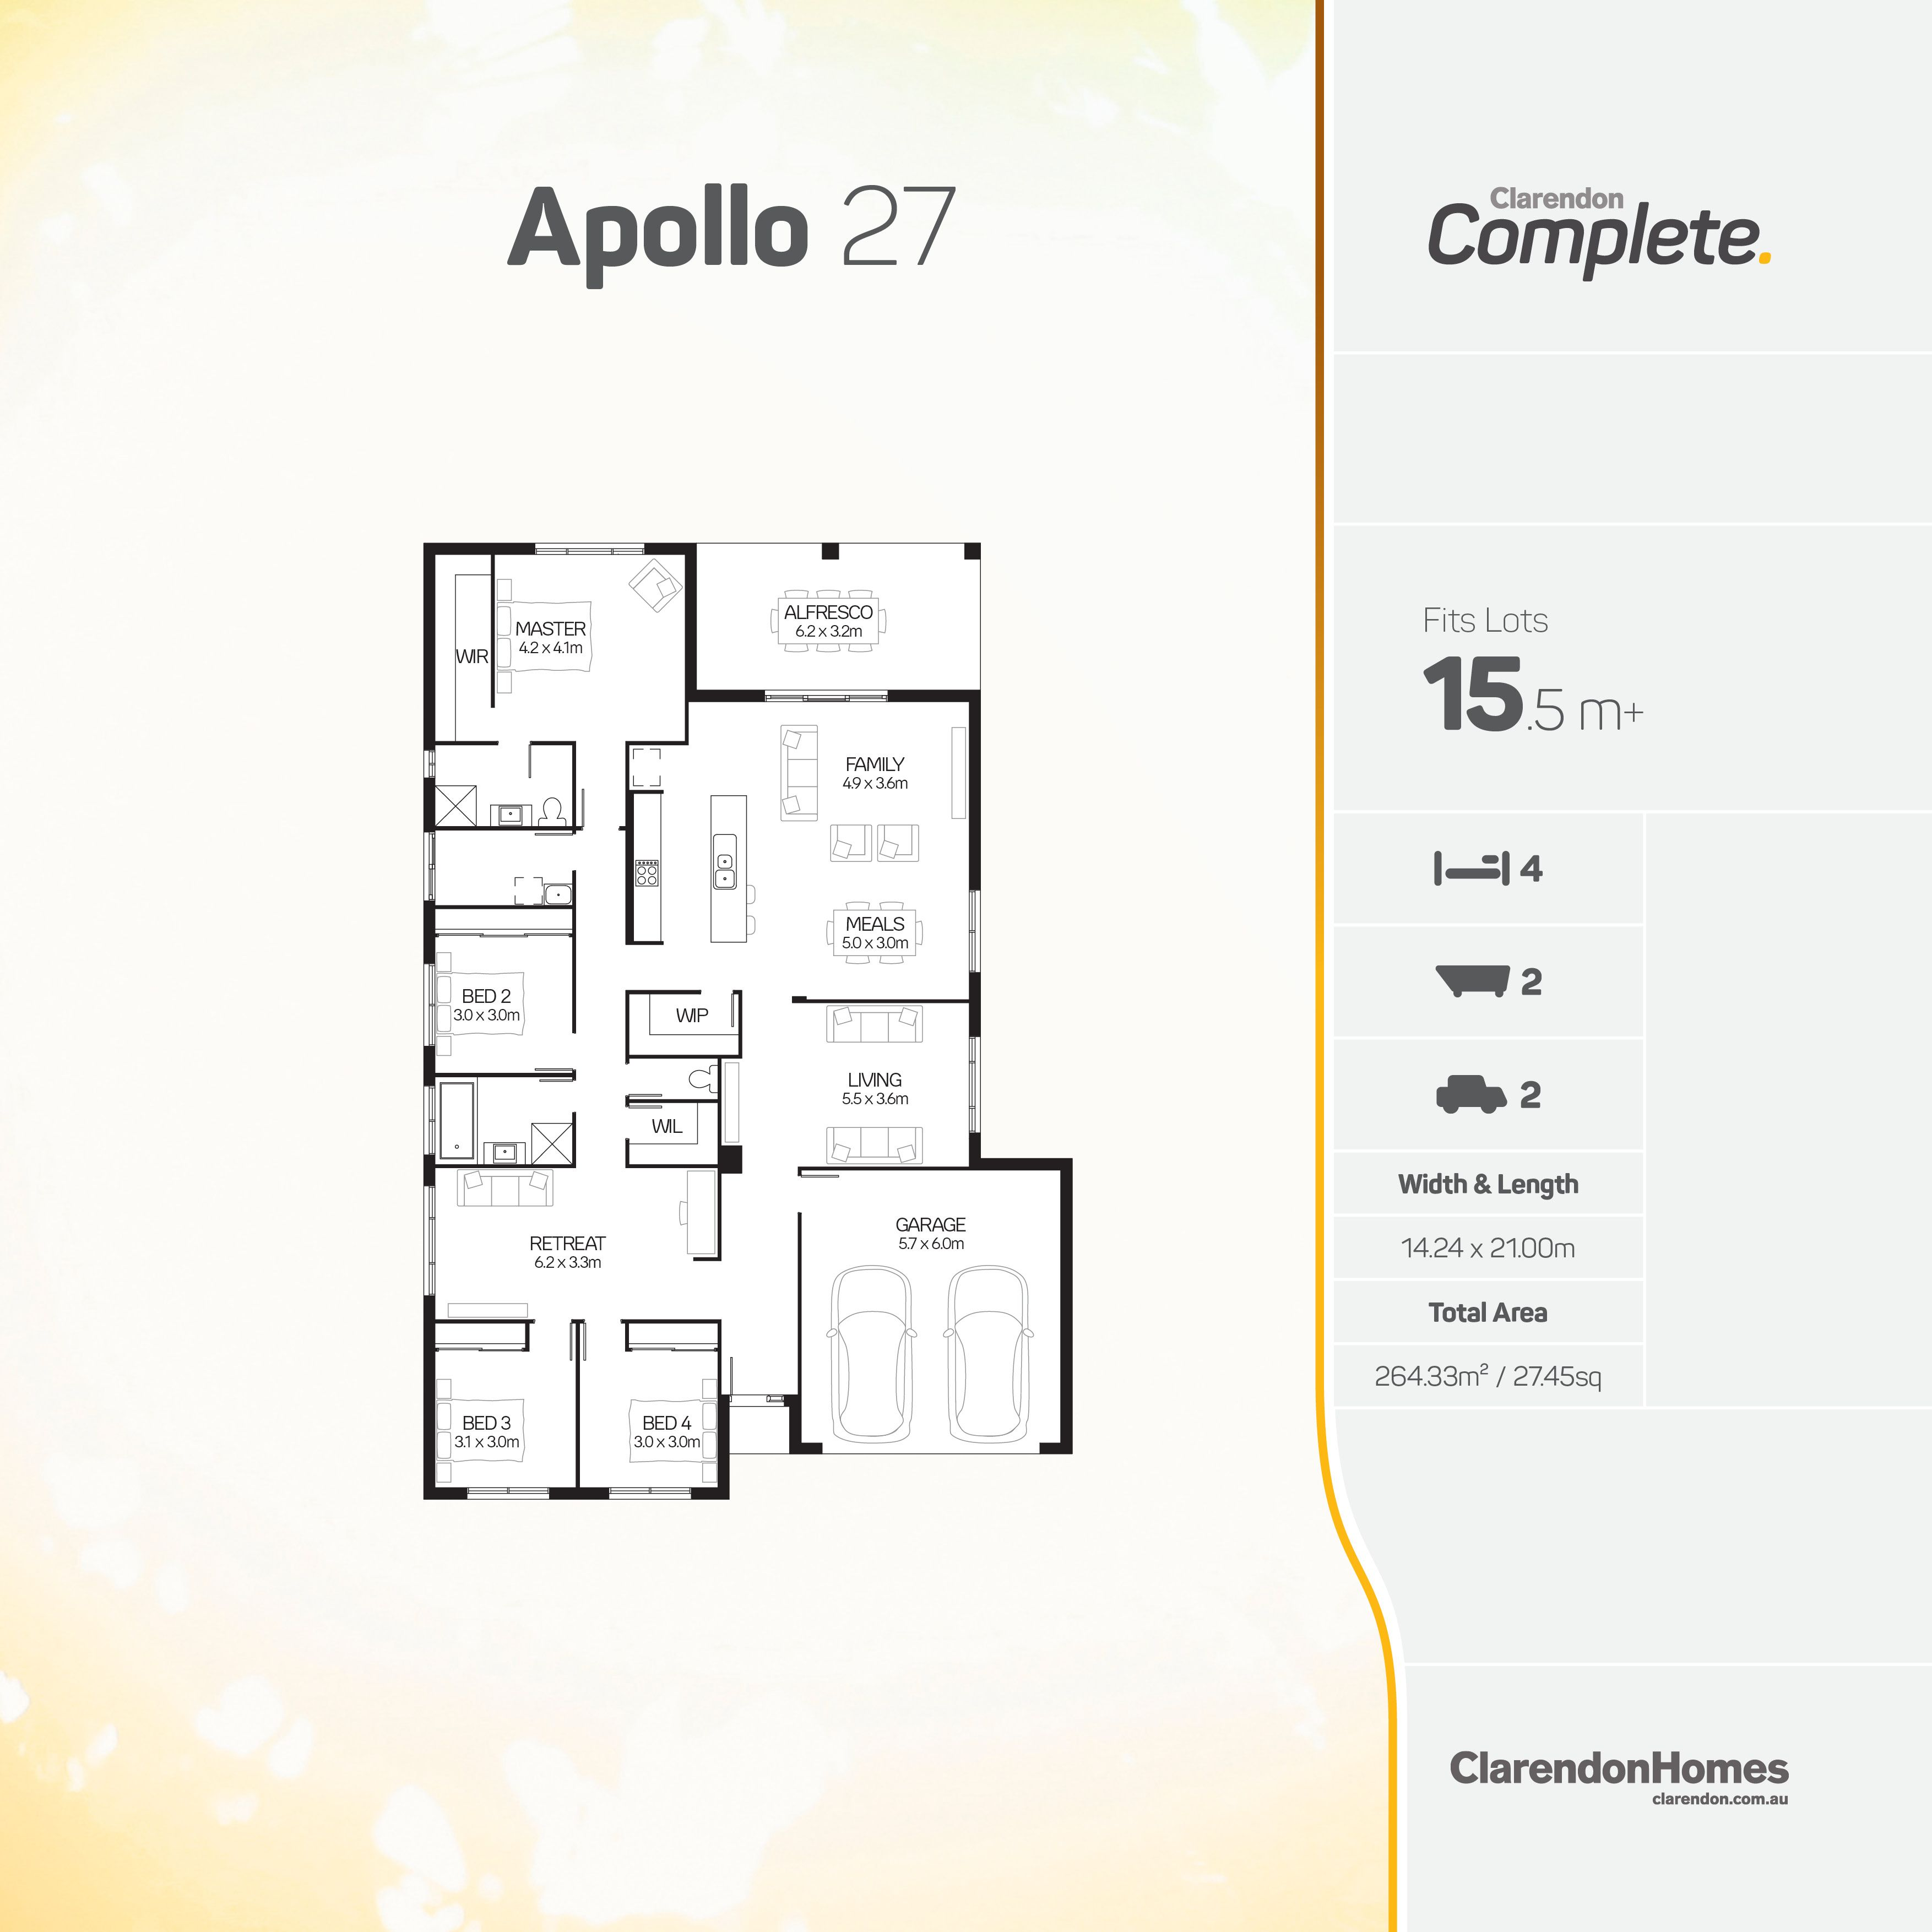 Clarendon Homes. Apollo 27. An ambitious design that aims to have it ...